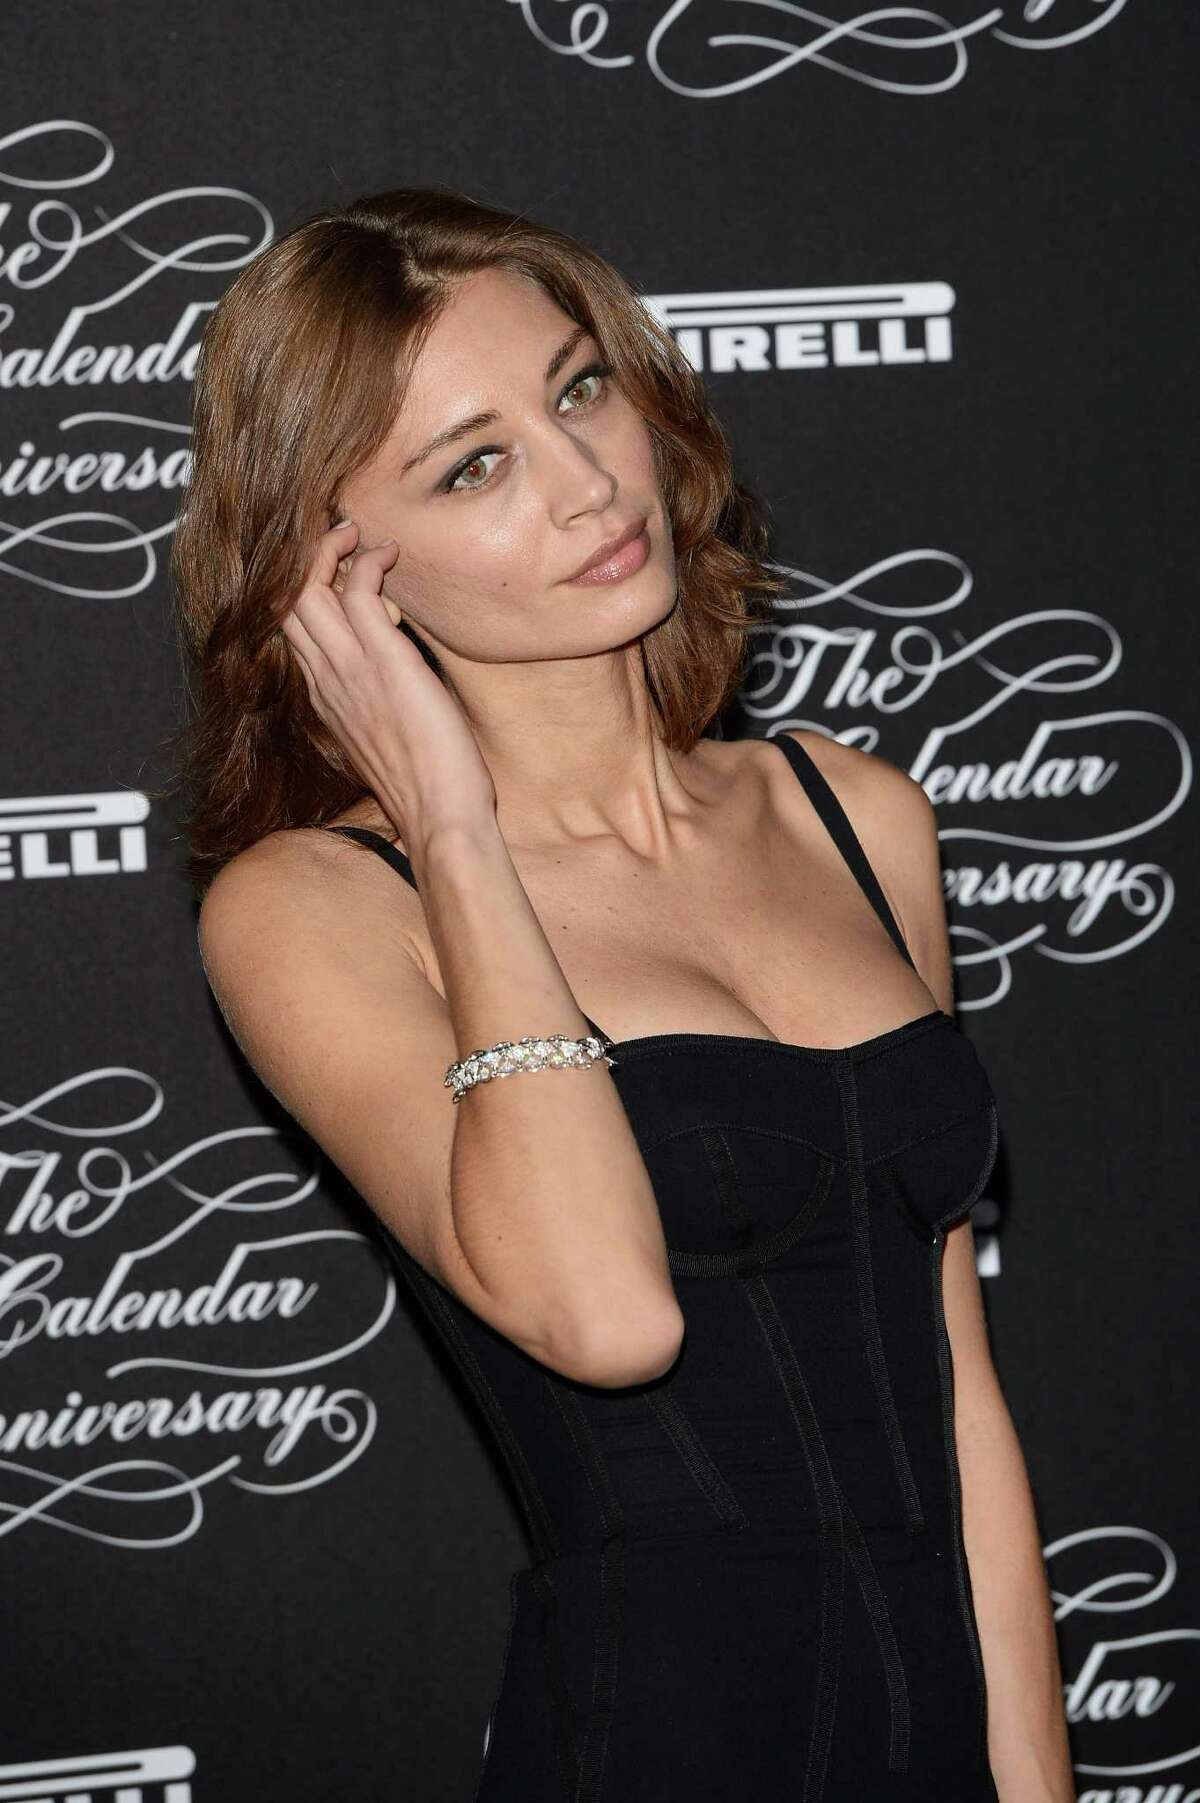 Margareth Made attends the Pirelli Calendar 50th Anniversary Red Carpet on November 21, 2013 in Milan, Italy. (Photo by Venturelli/WireImage)